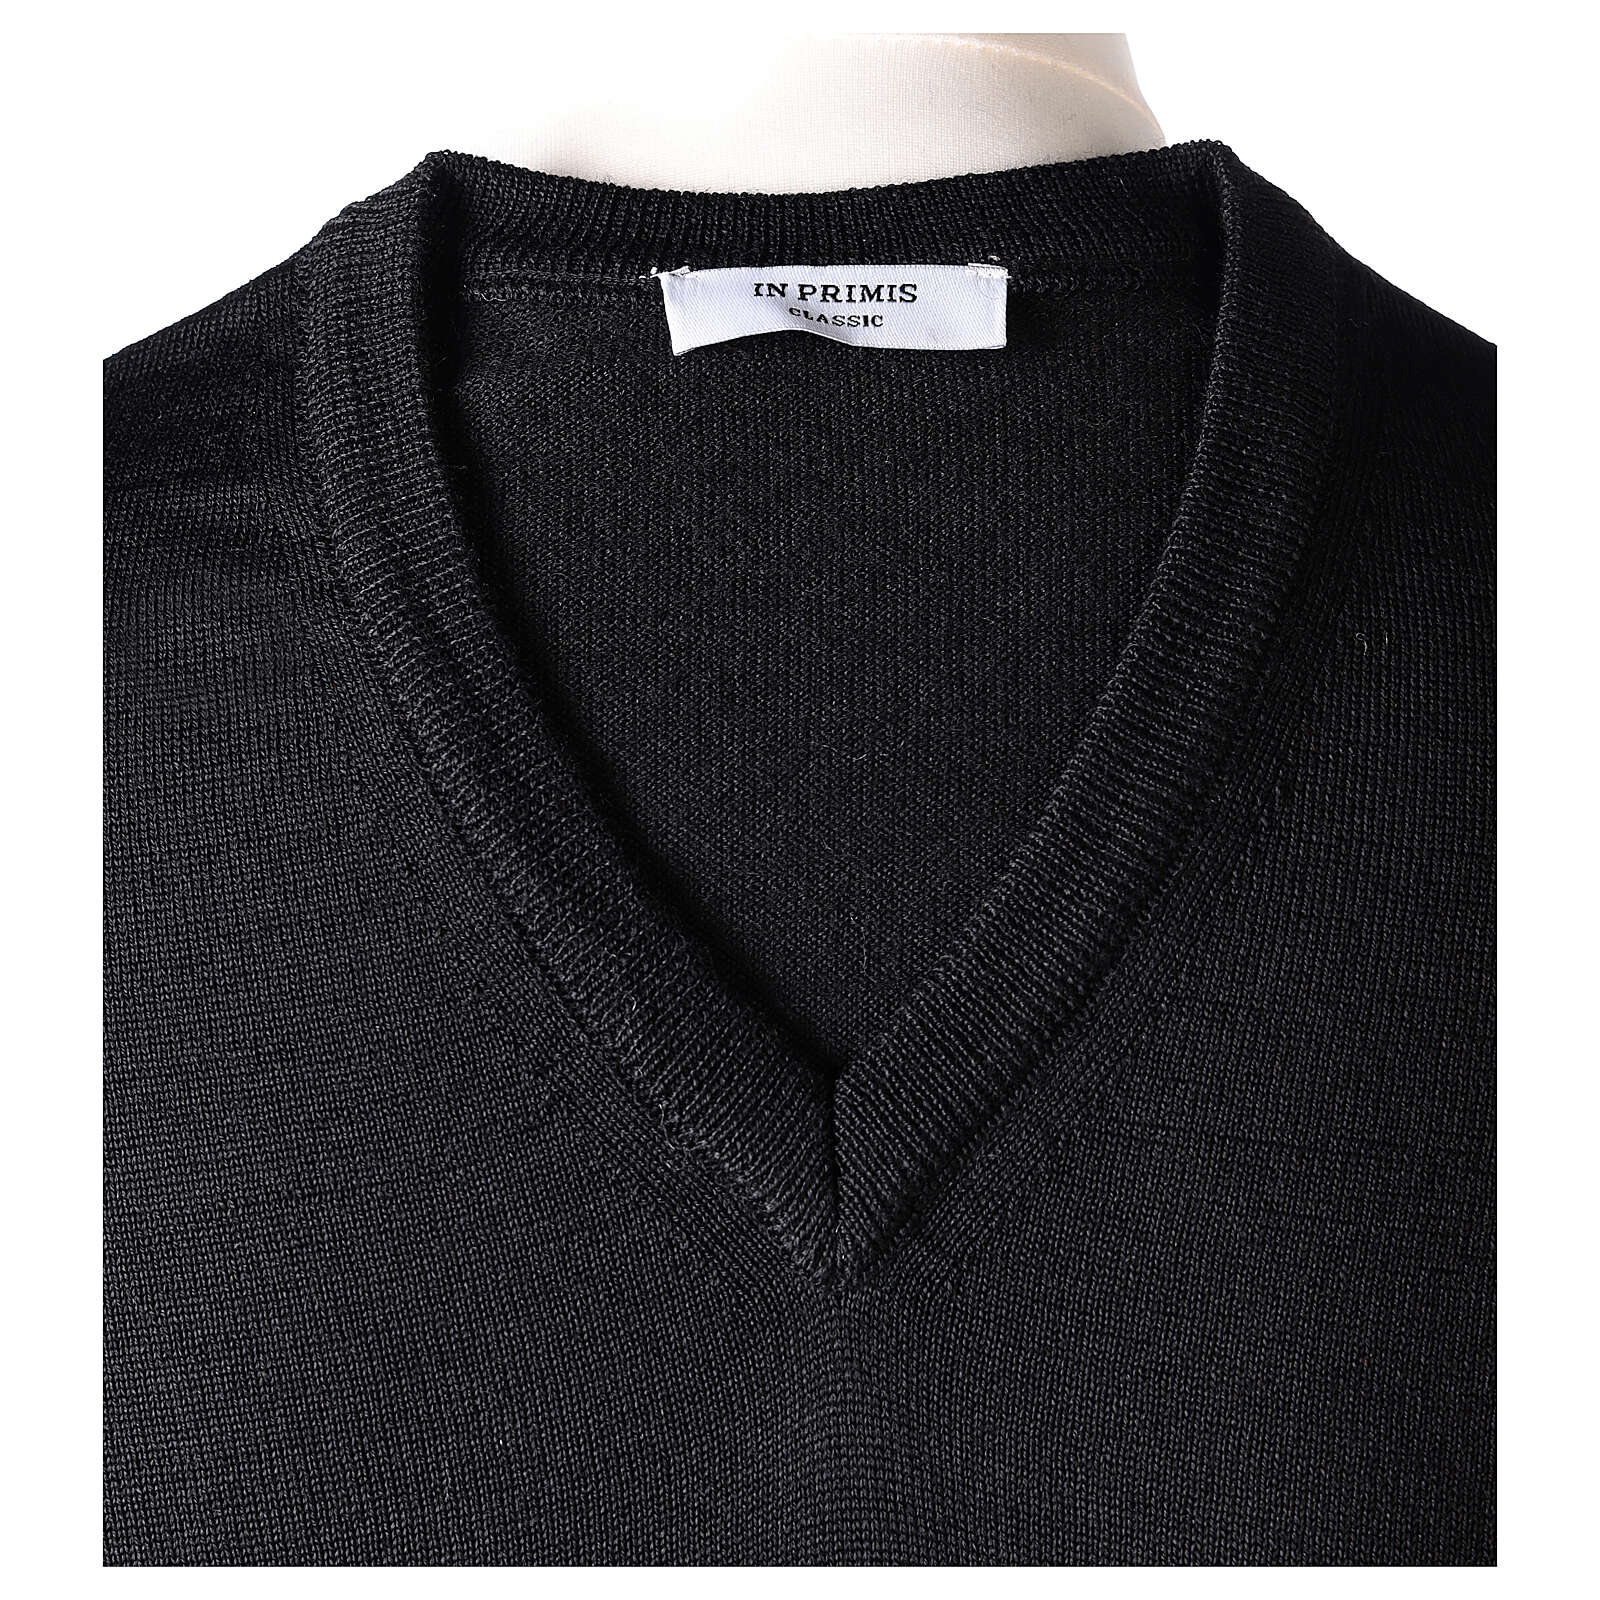 V-neck jumper for clergymen black plain knit In Primis 4